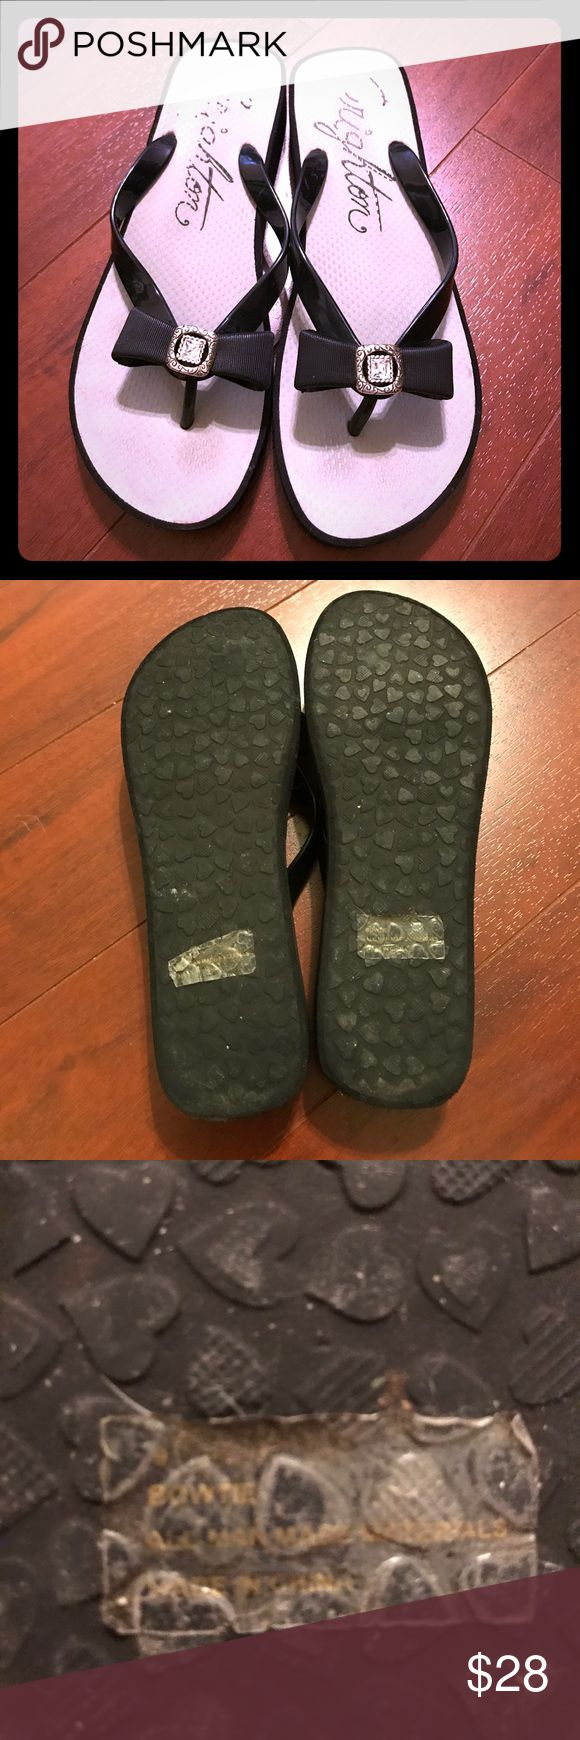 """Brighton """"Bowtie """" Wedge Flip Flops 9 Gently used black flip flops with jeweled bow detailing. Size 9. platform wedge sole. All man made material. From the Roxbury collection. $48 at Brighton Brighton Shoes Sandals"""